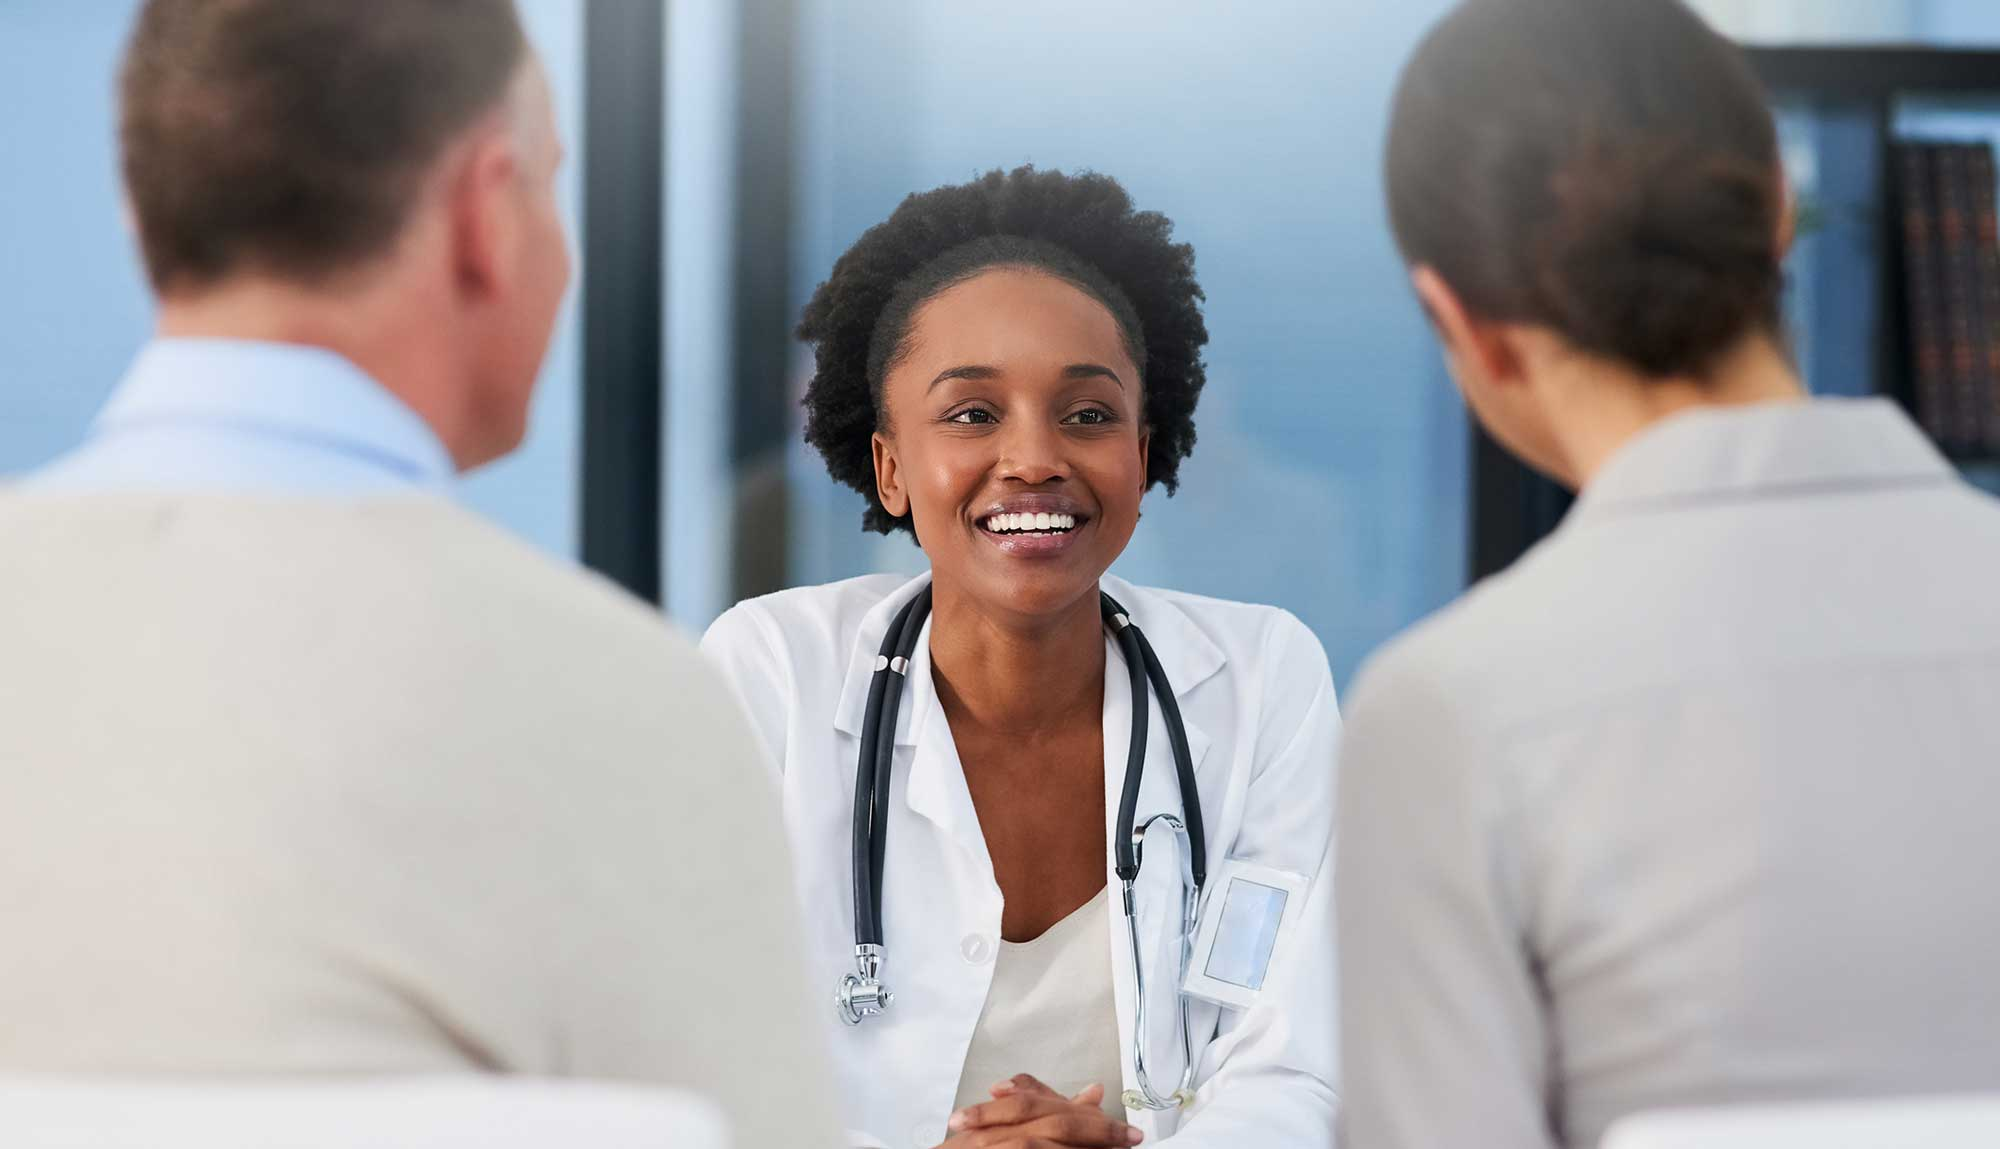 A reproductive endocrinologists consults with patients.